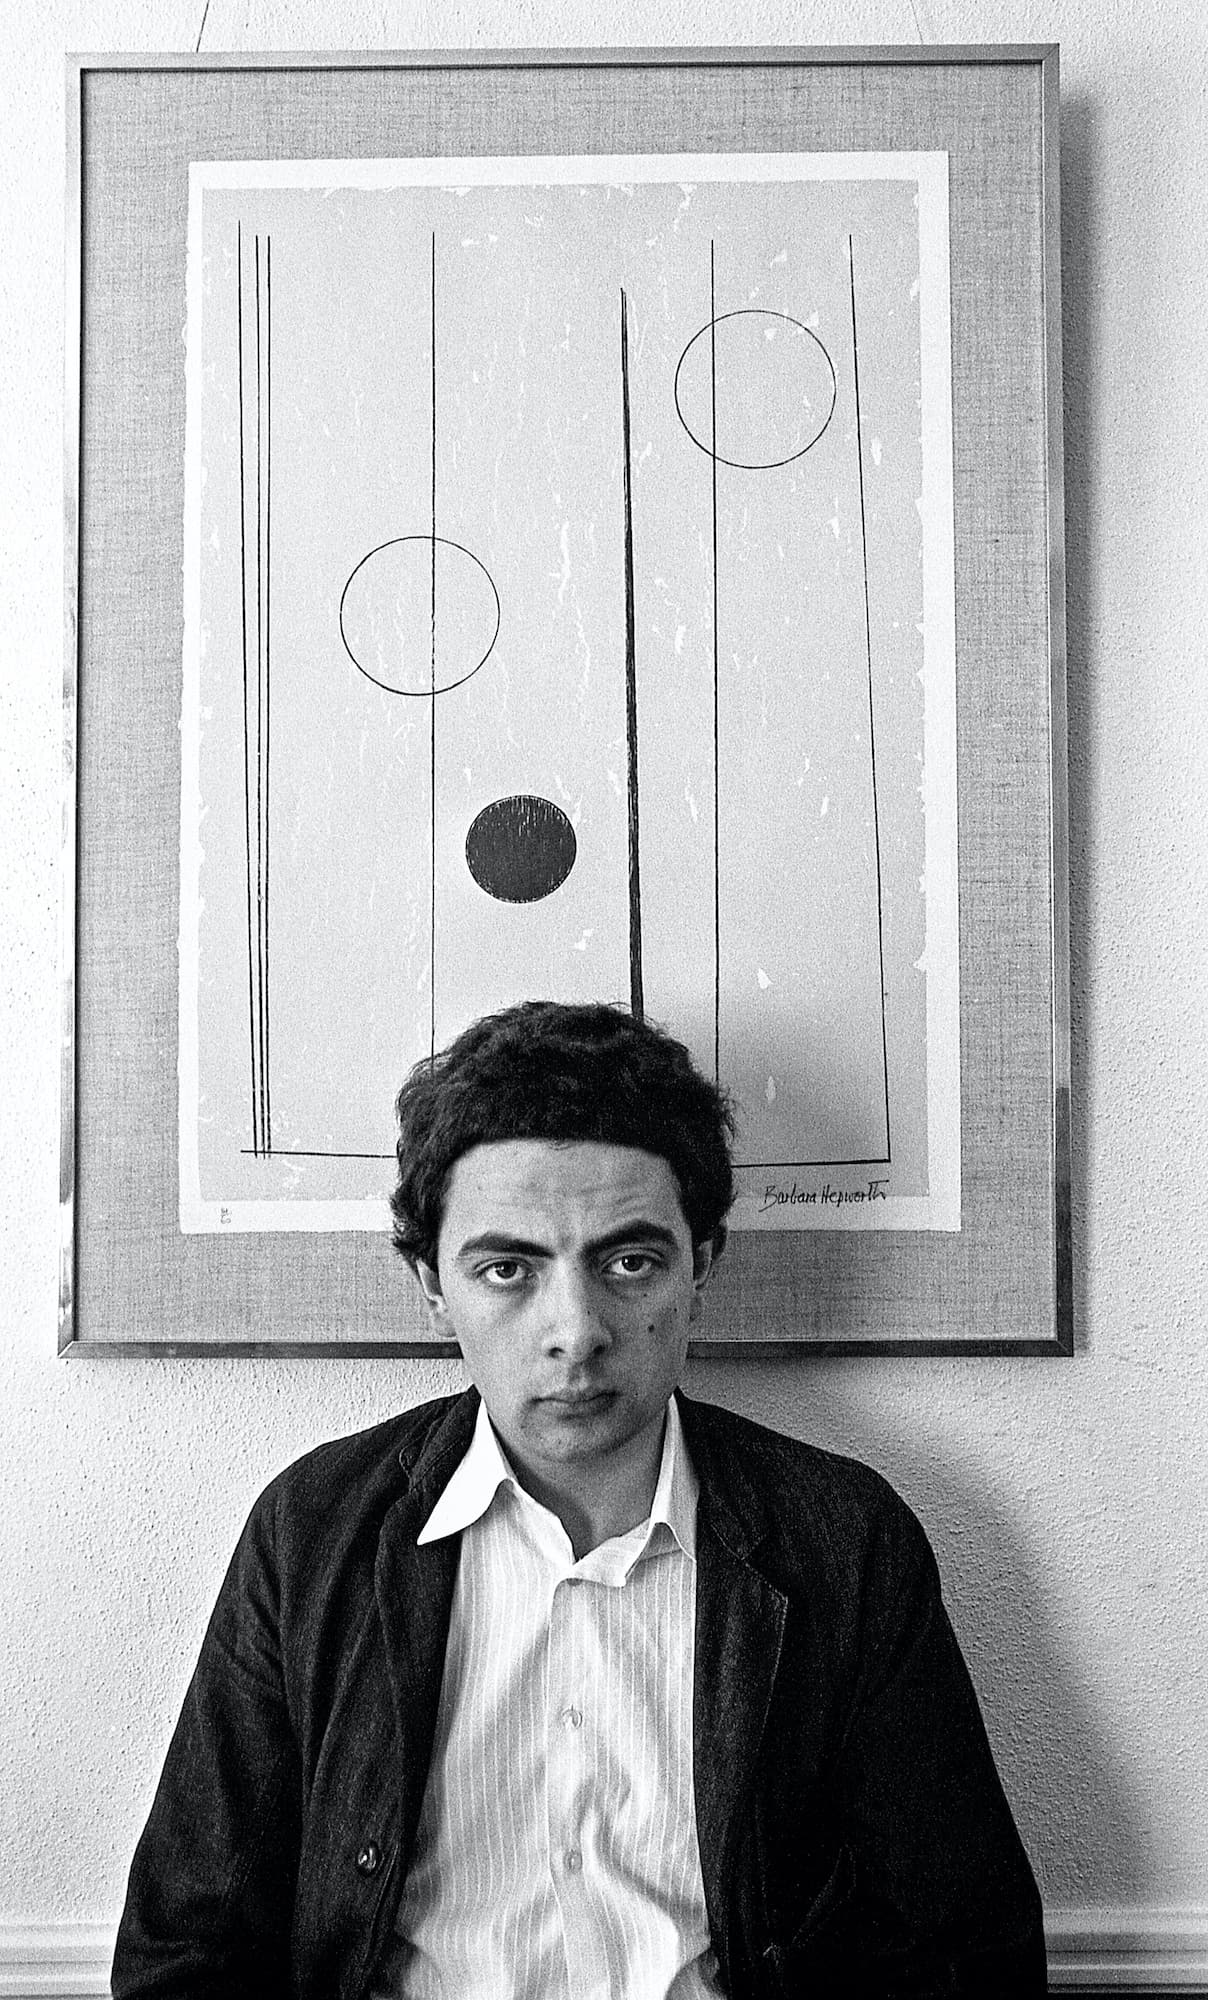 Rowan Atkinson portrait while at Oxford University